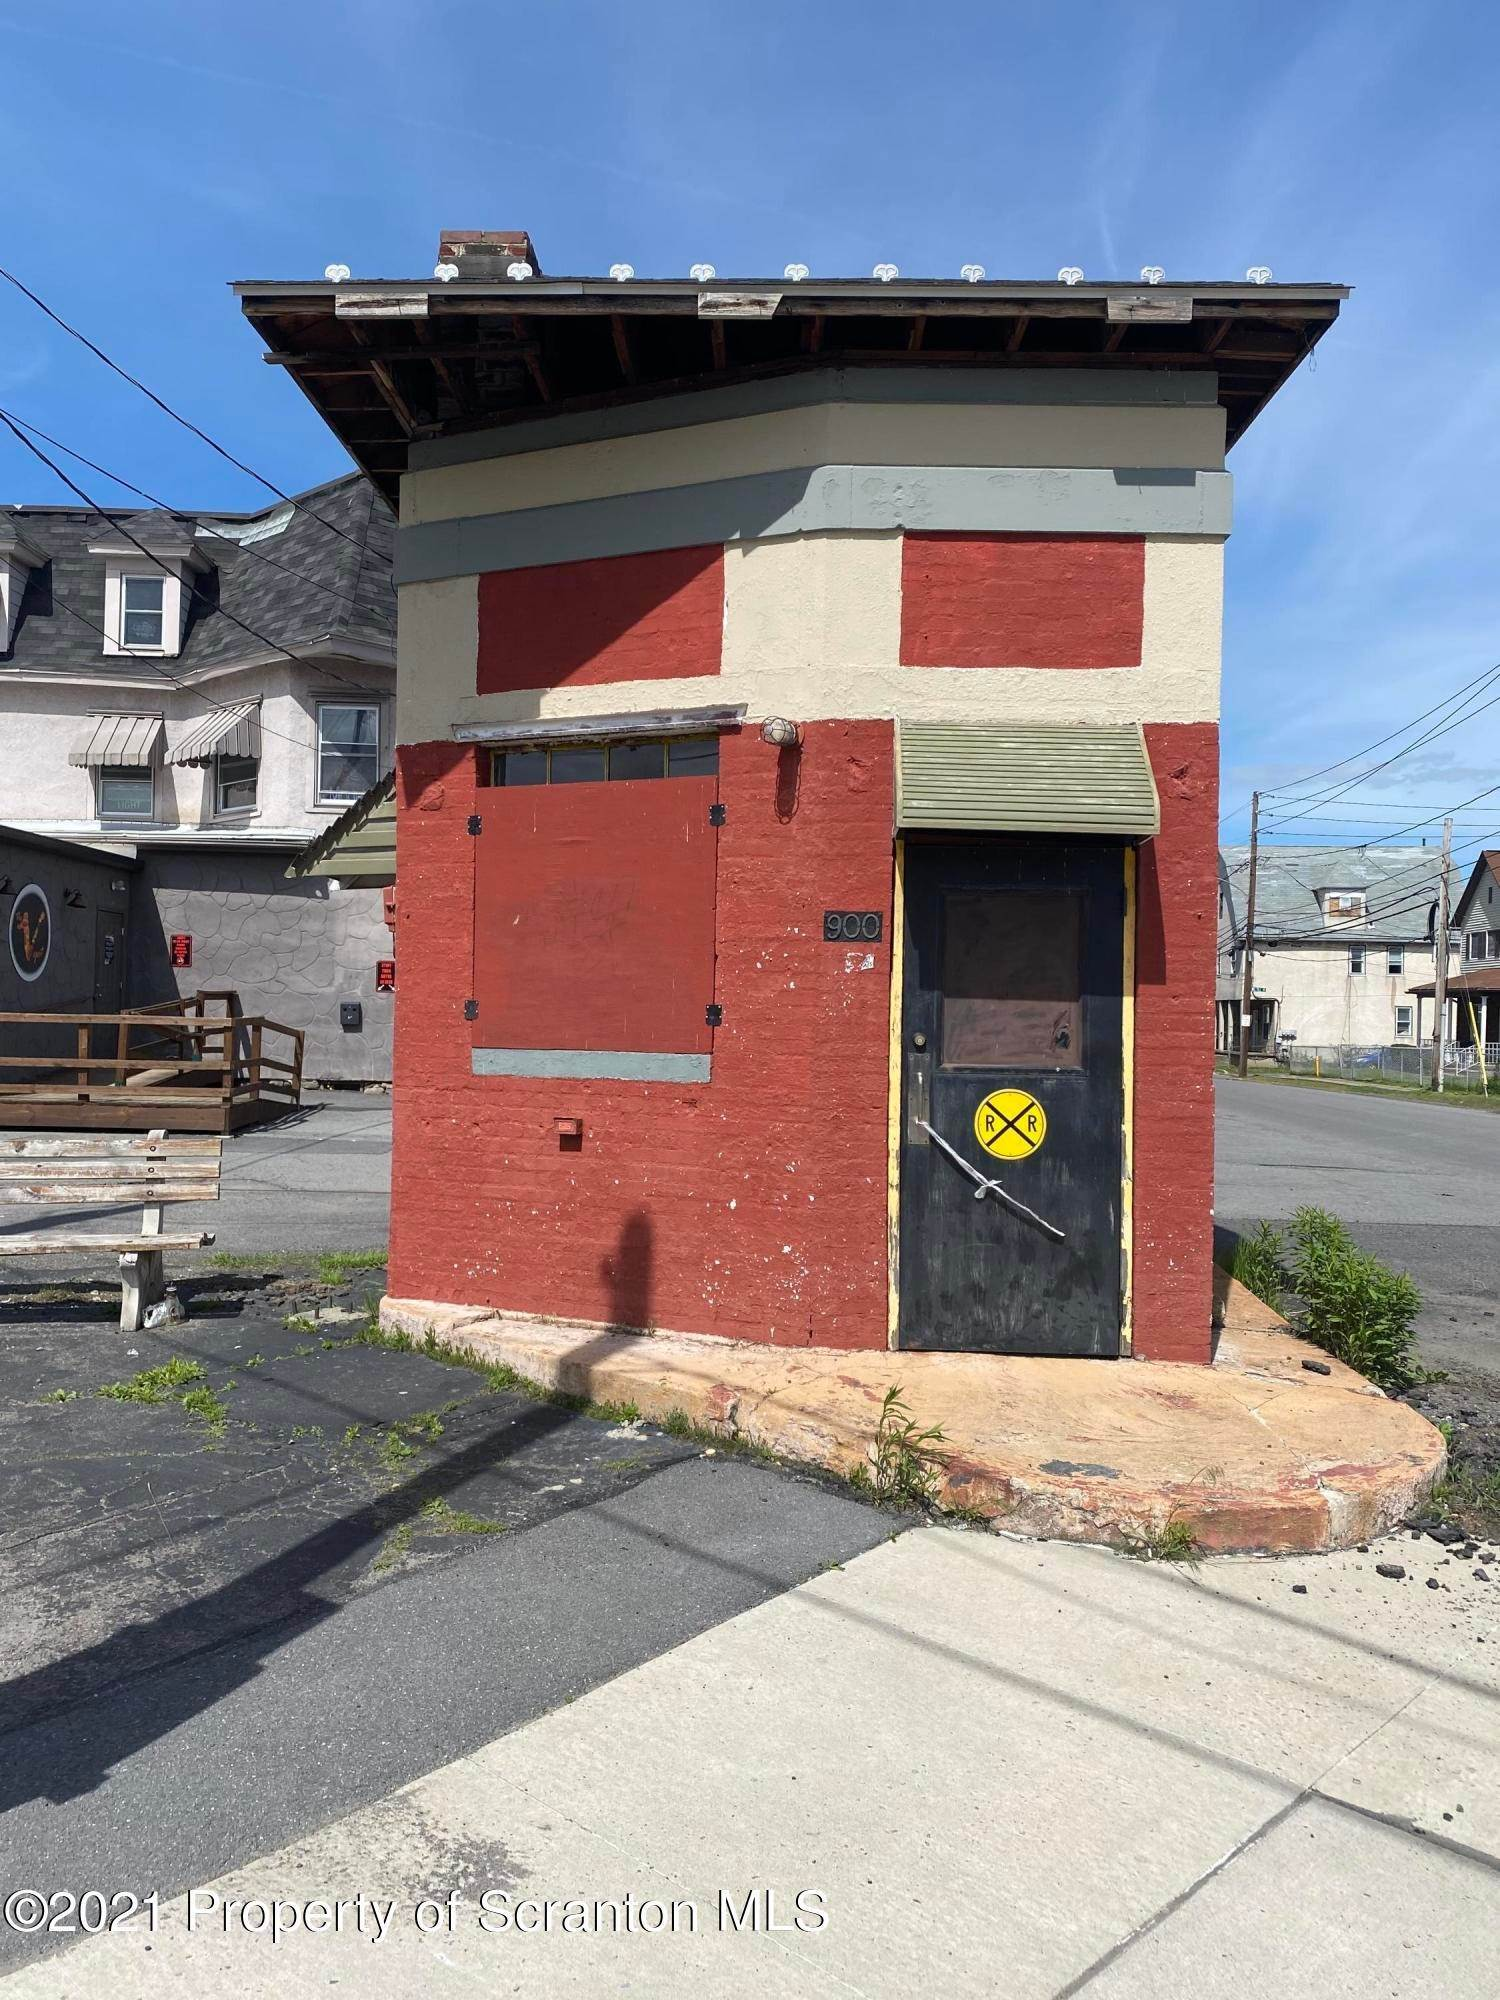 Property for Sale at 900 Providence Rd Scranton, Pennsylvania 18508 United States